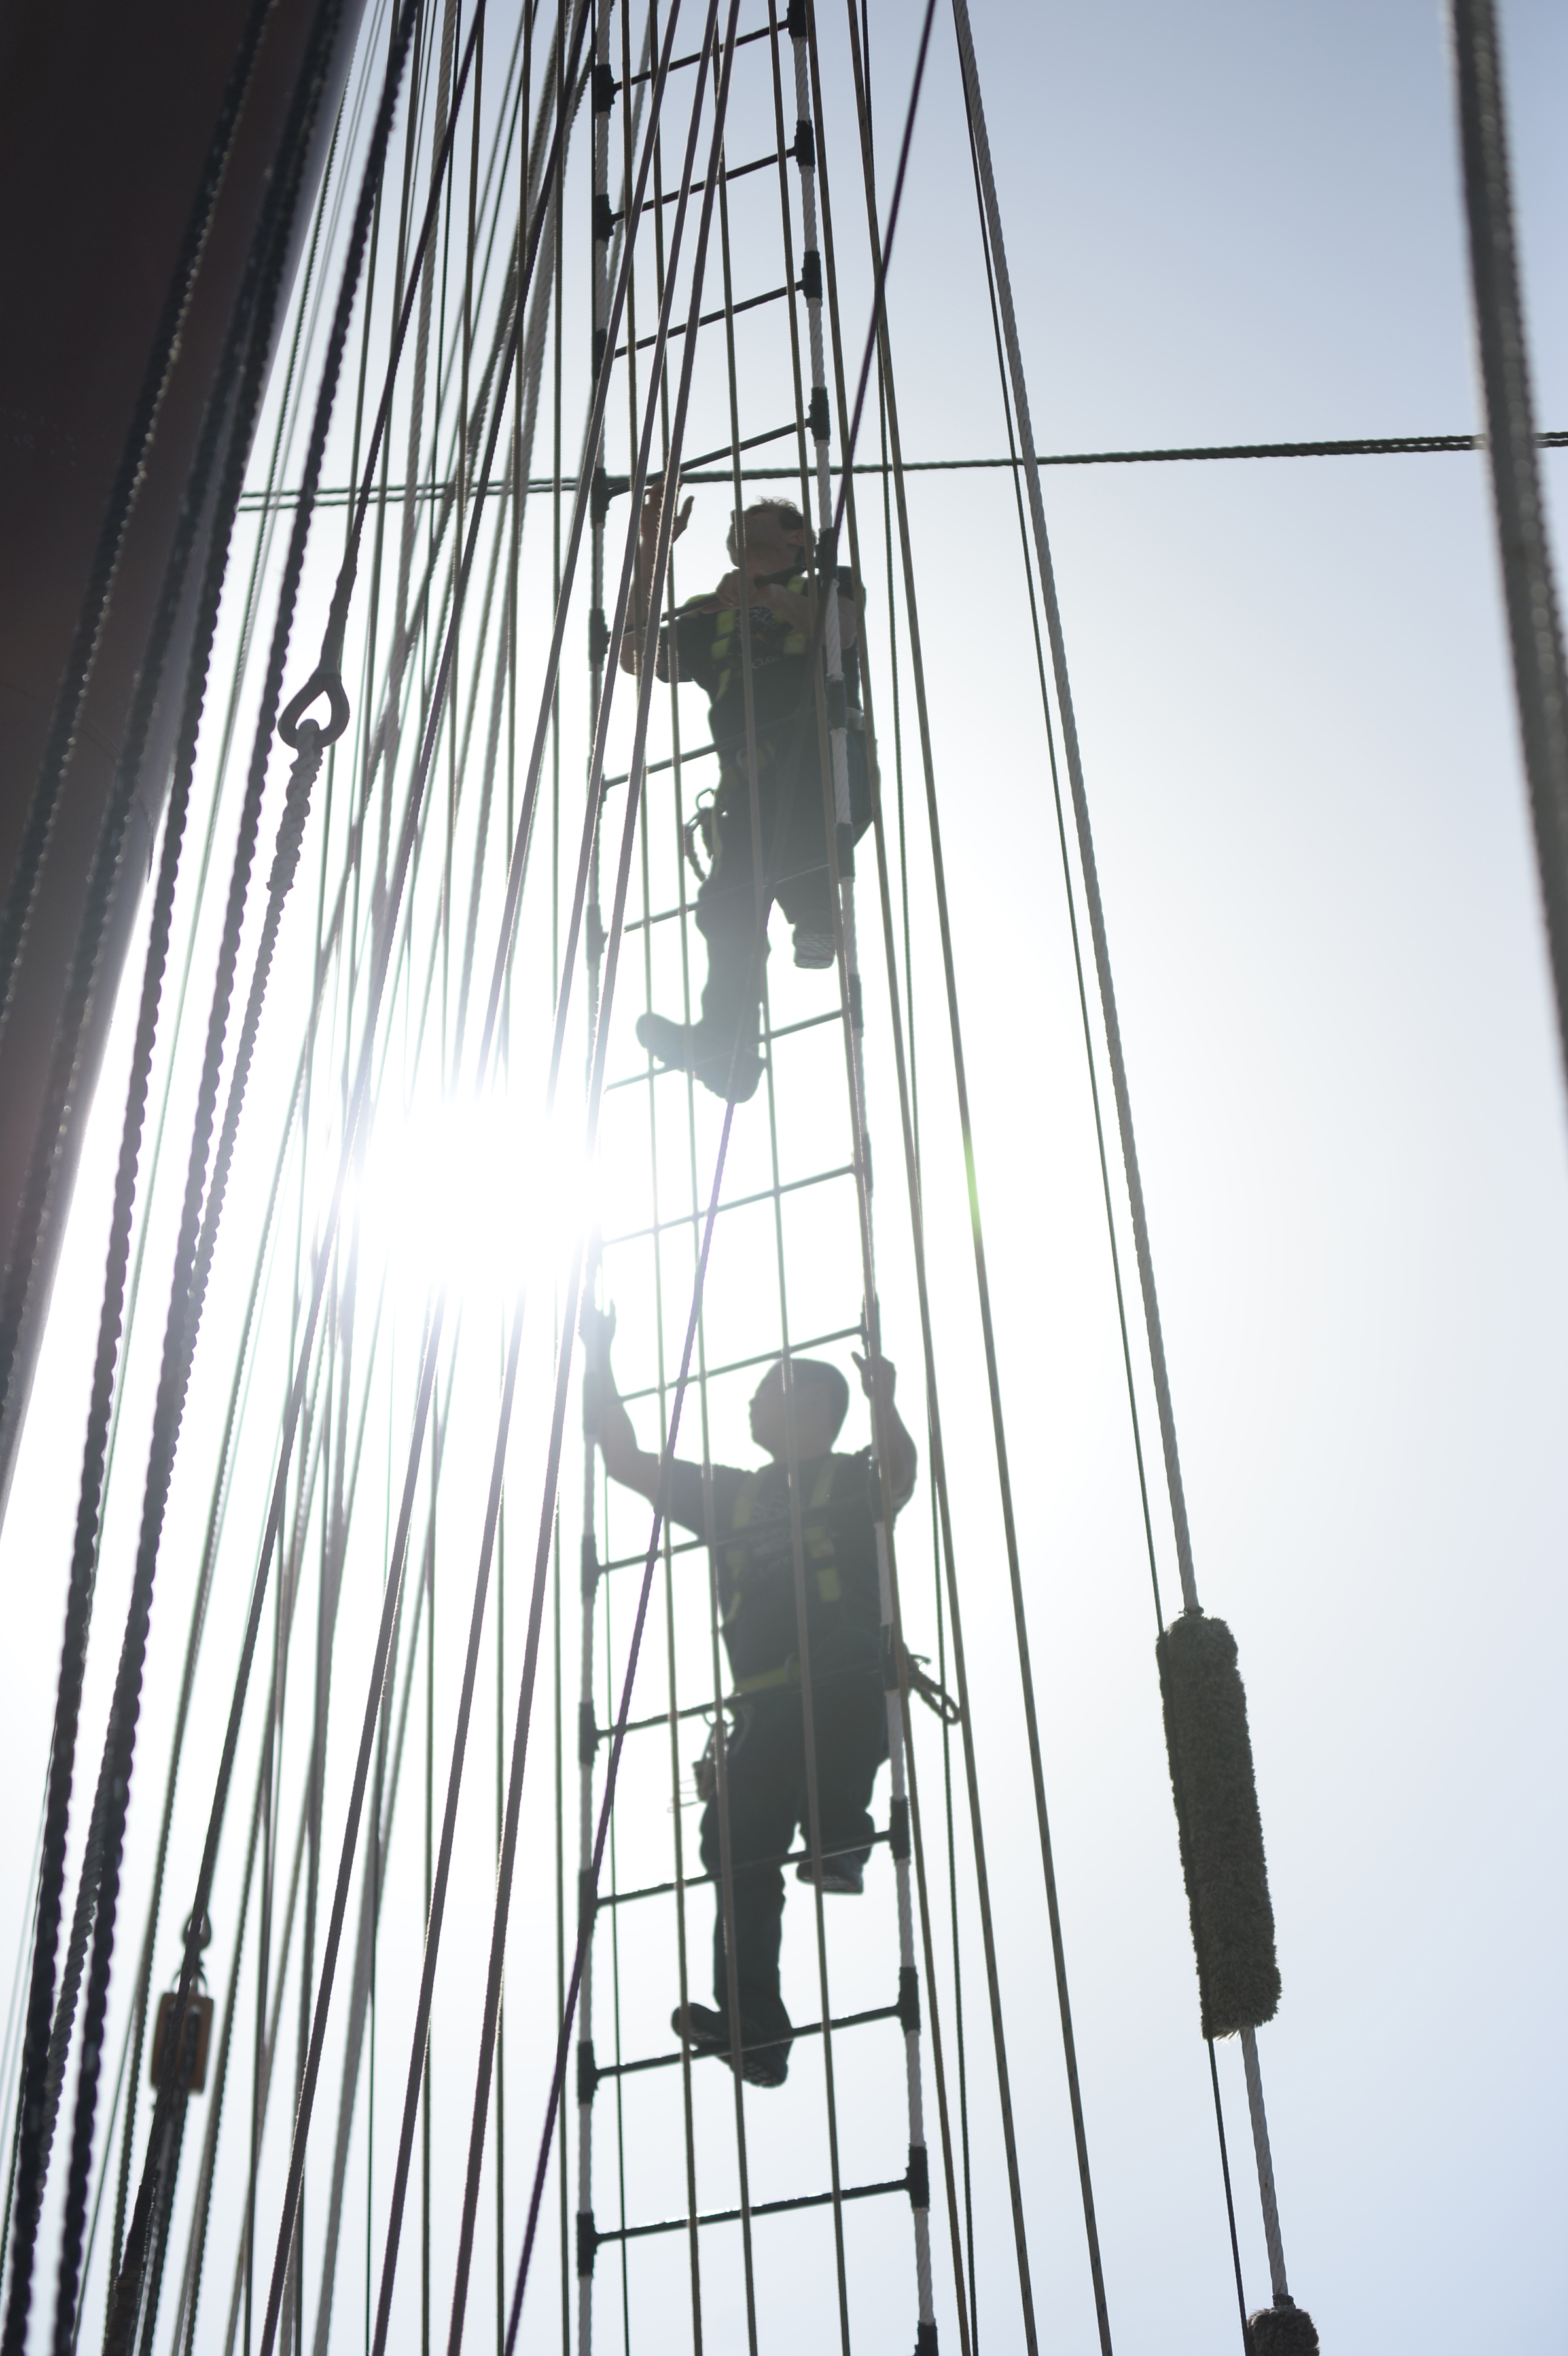 Climbing the rigging...